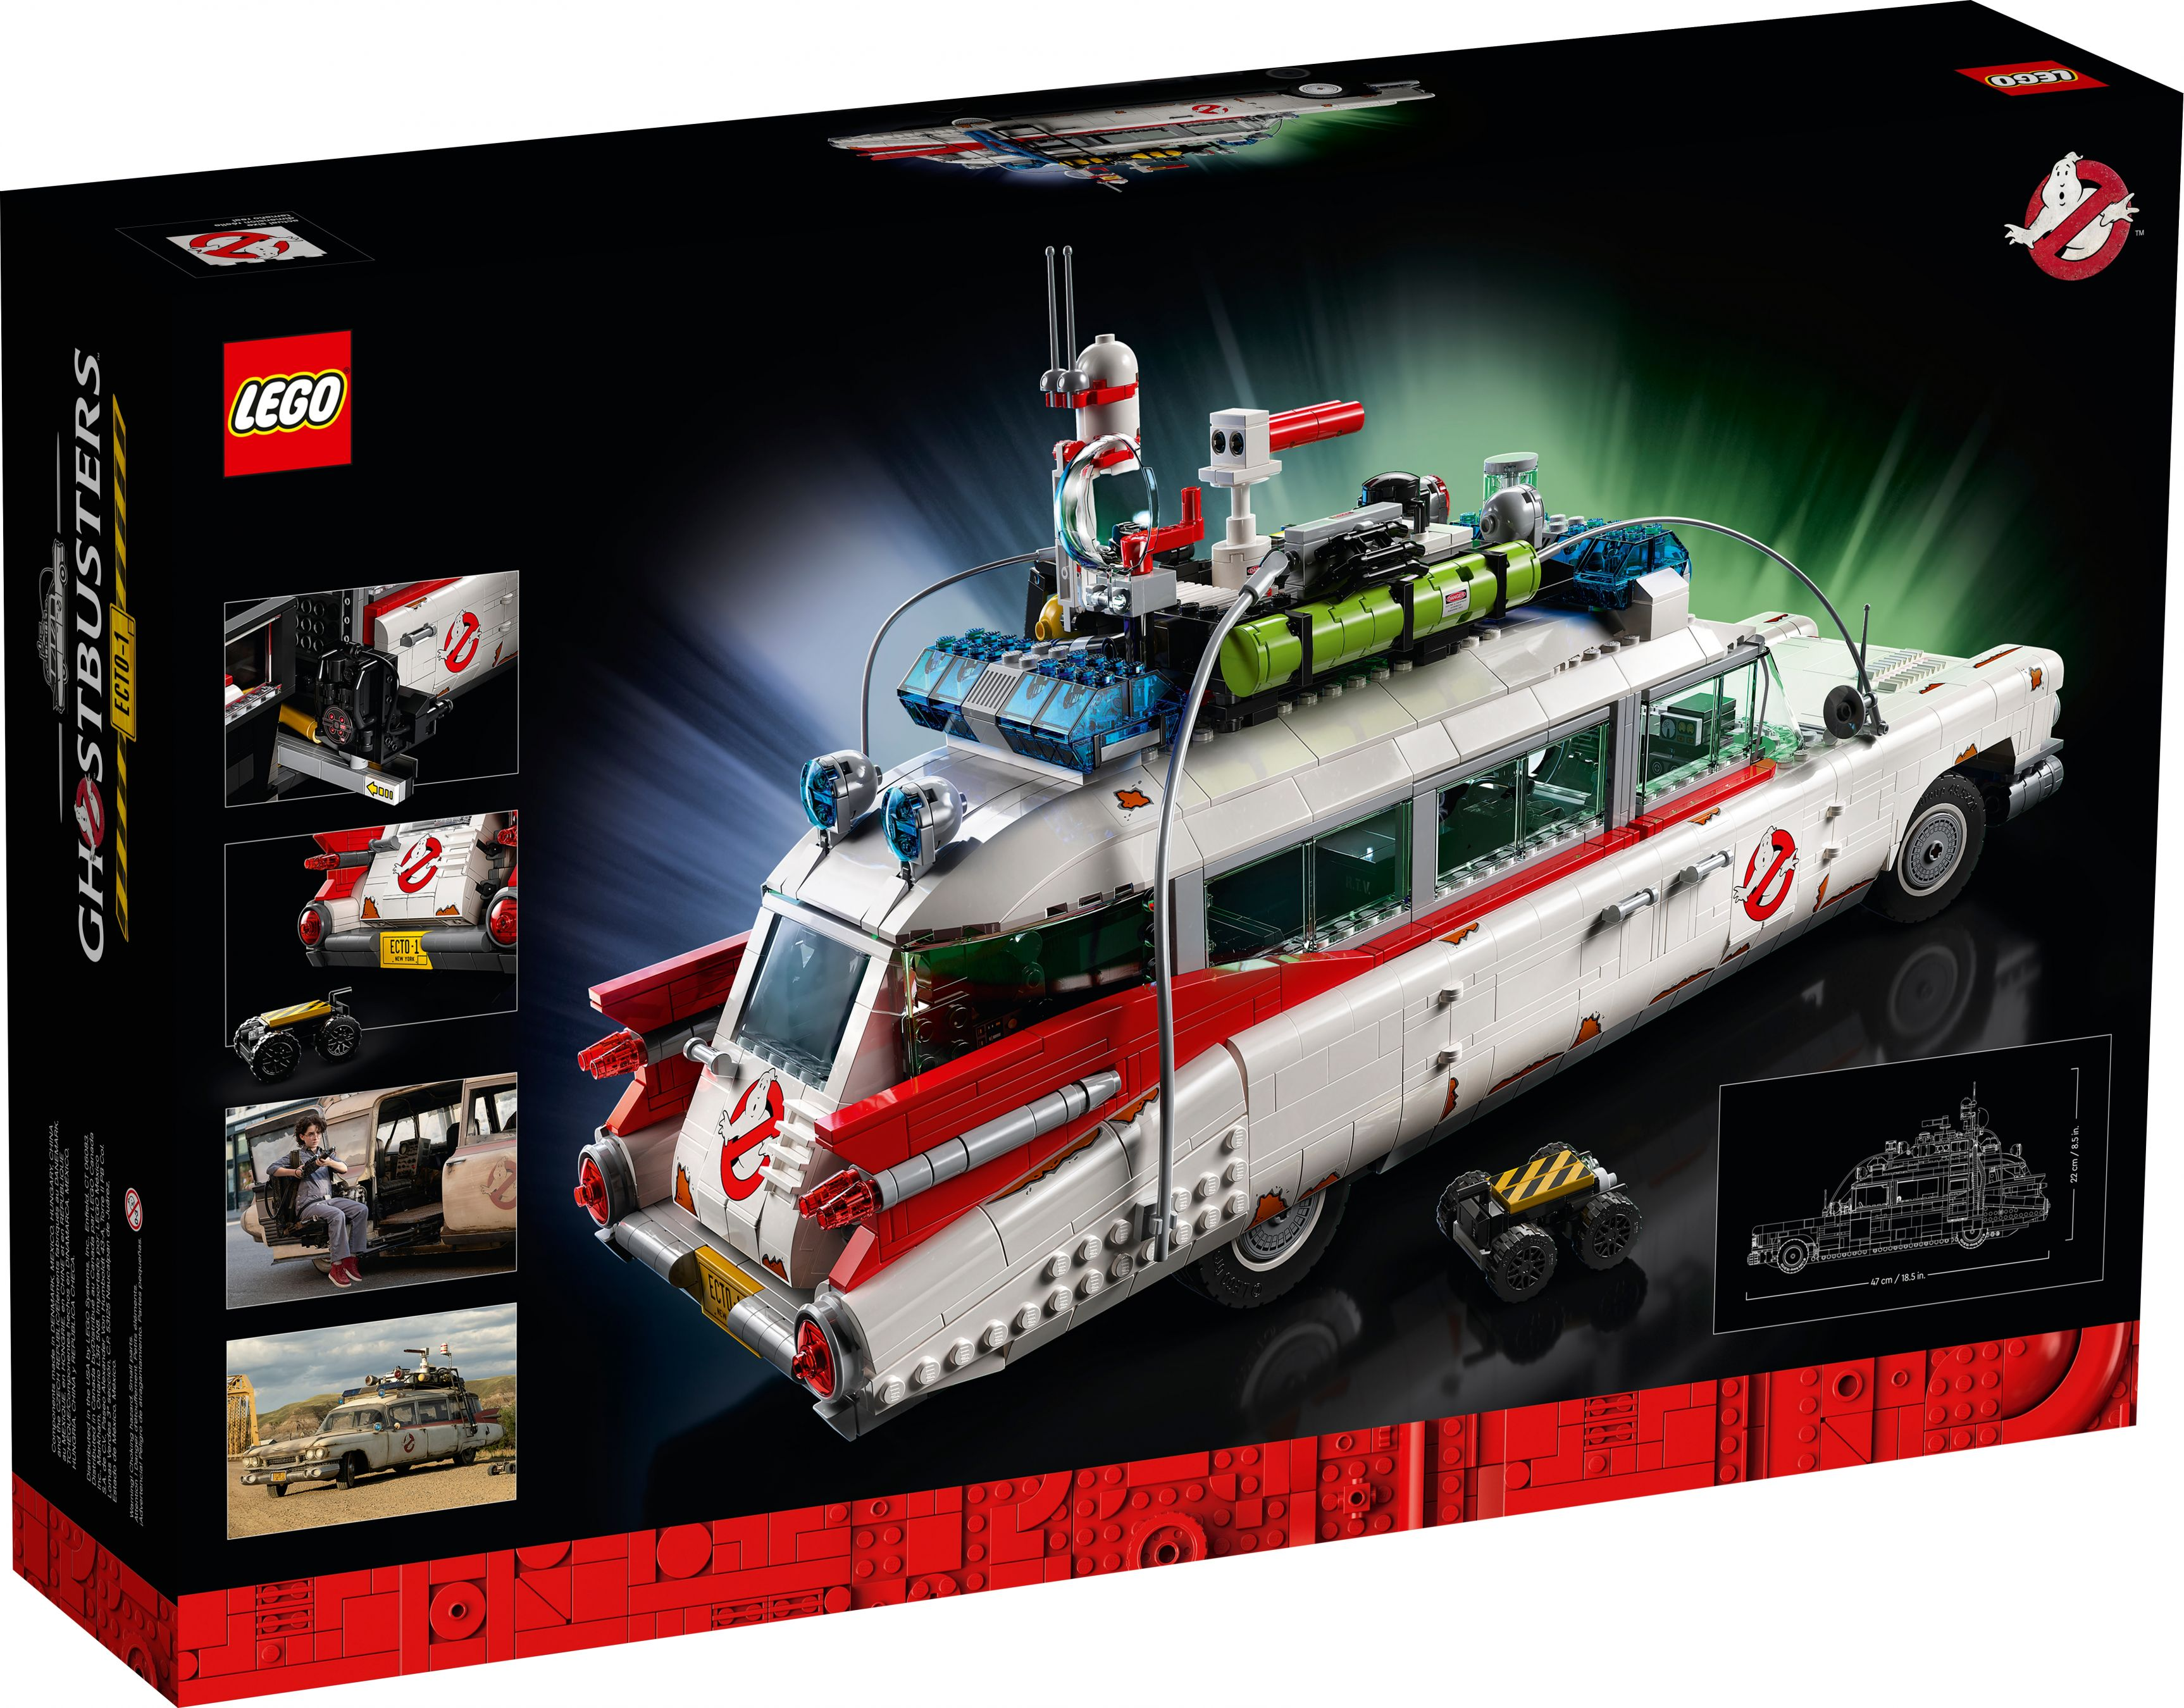 LEGO Advanced Models 10274 Ghostbusters™ ECTO-1 LEGO_10274_alt9.jpg